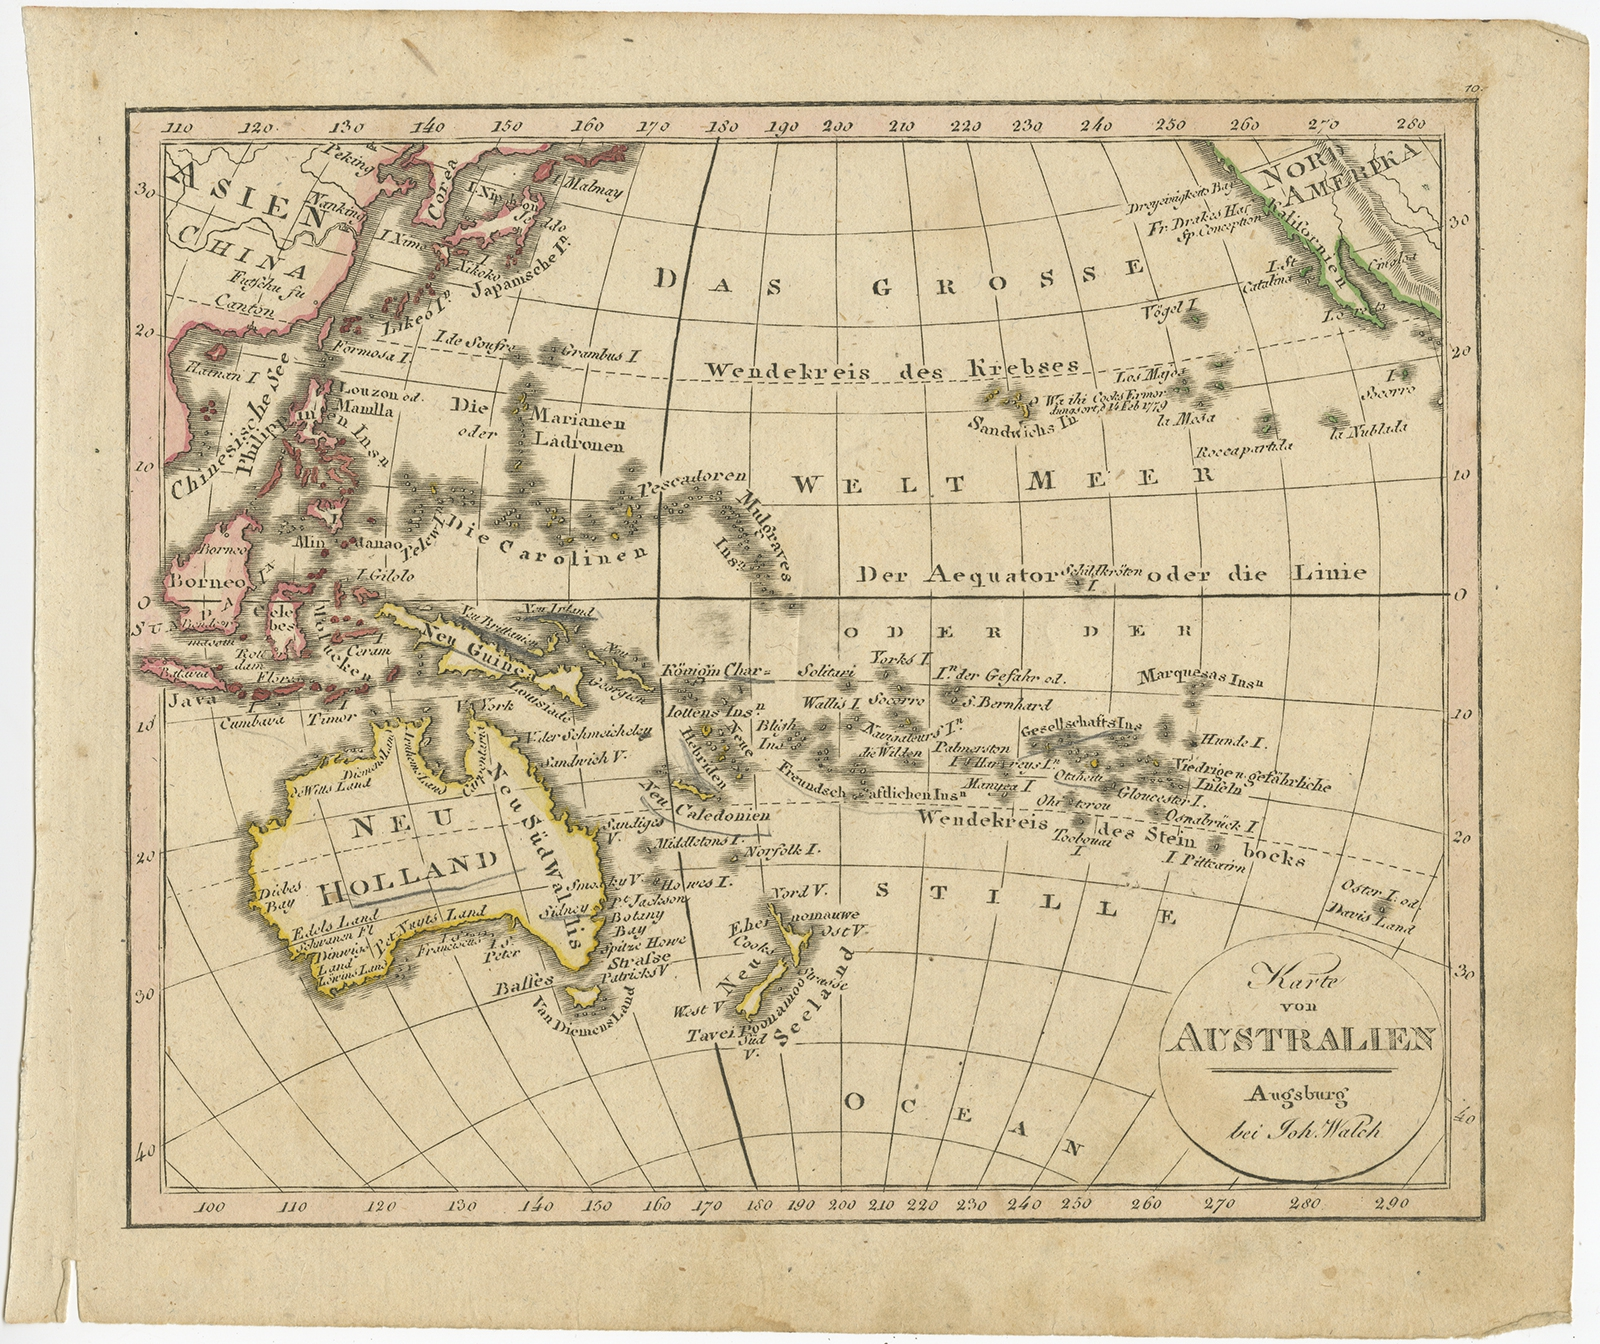 Antique Map of Australia and New Zealand by Walch (1826)